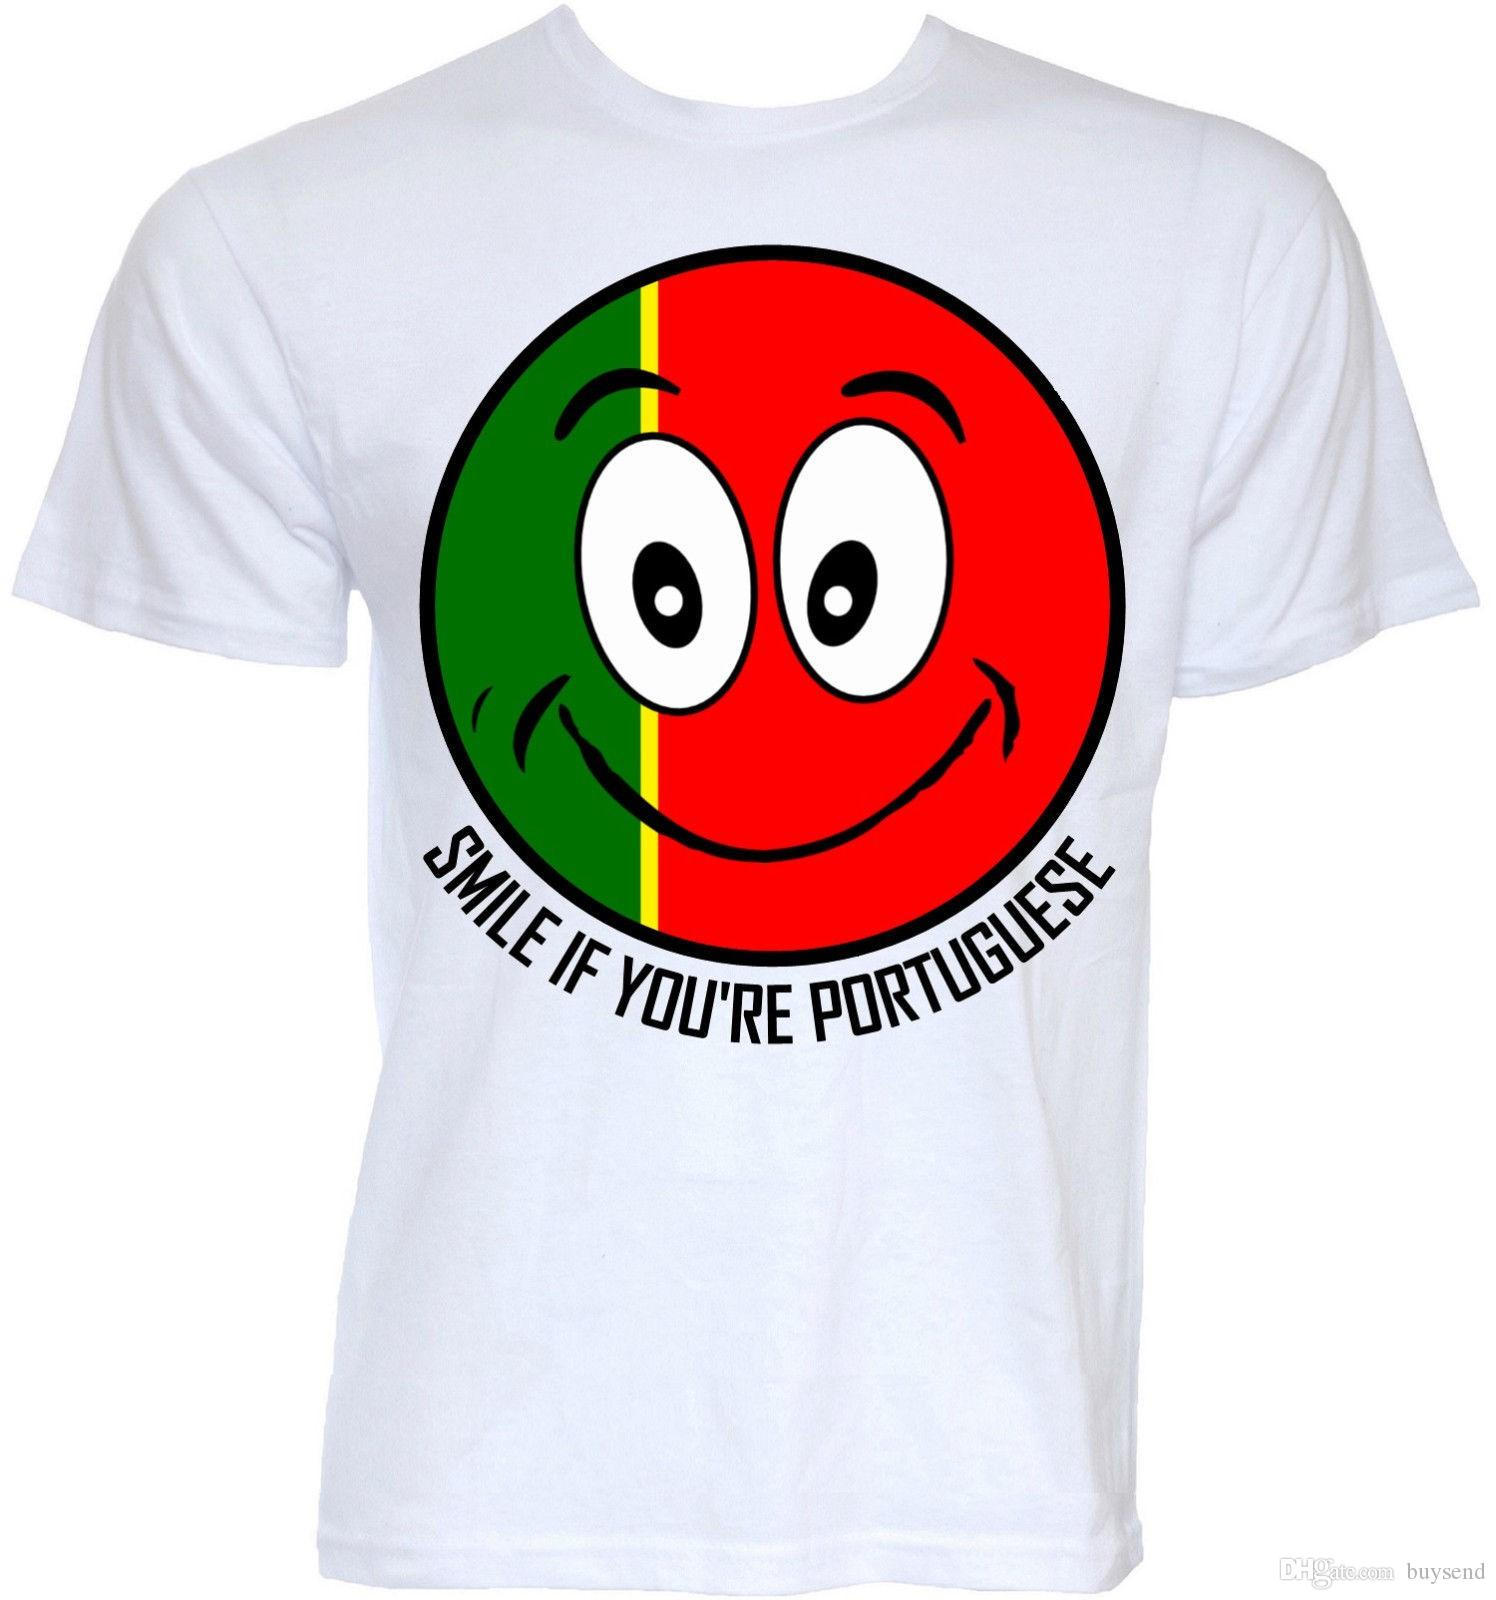 11dab9c1 PORTUGUESE T SHIRTS MENS FUNNY NOVELTY PORTUGAL FLAG JOKE SLOGAN GIFTS T  SHIRT T Shirt With Design It T Shirt Design From Buysend, $10.03  DHgate.Com